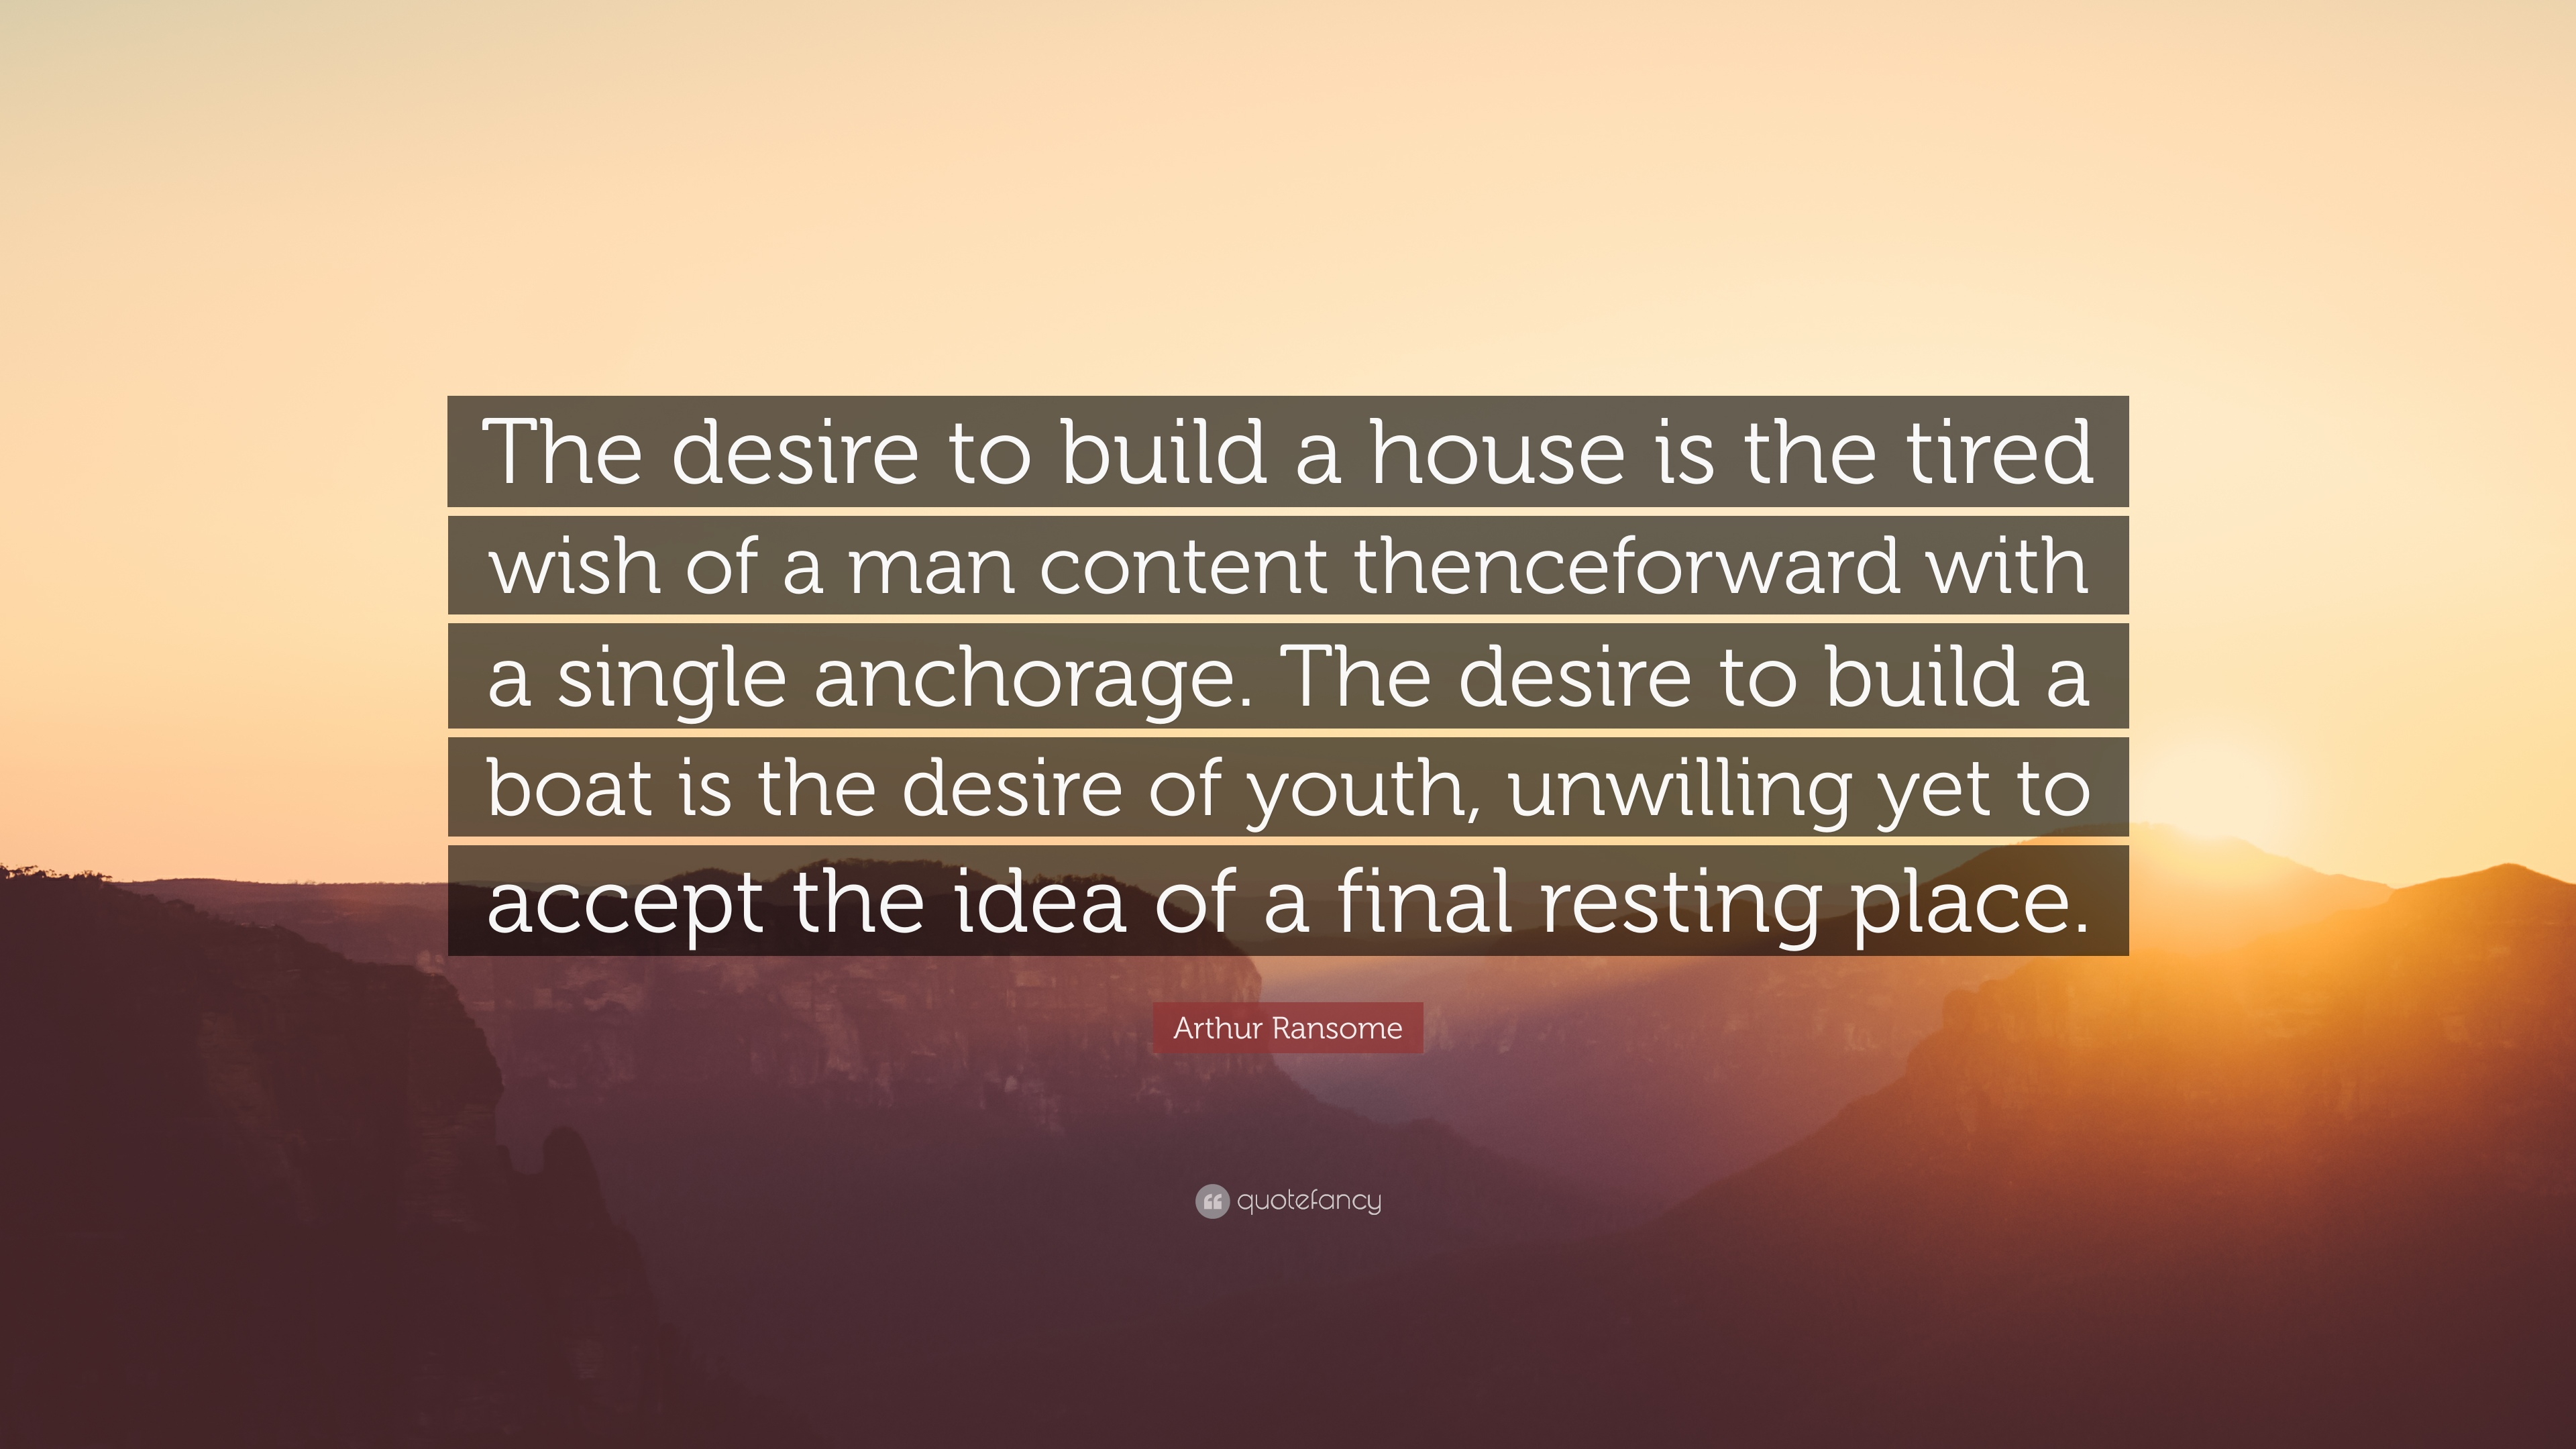 Arthur Ransome Quote: U201cThe Desire To Build A House Is The Tired Wish Of